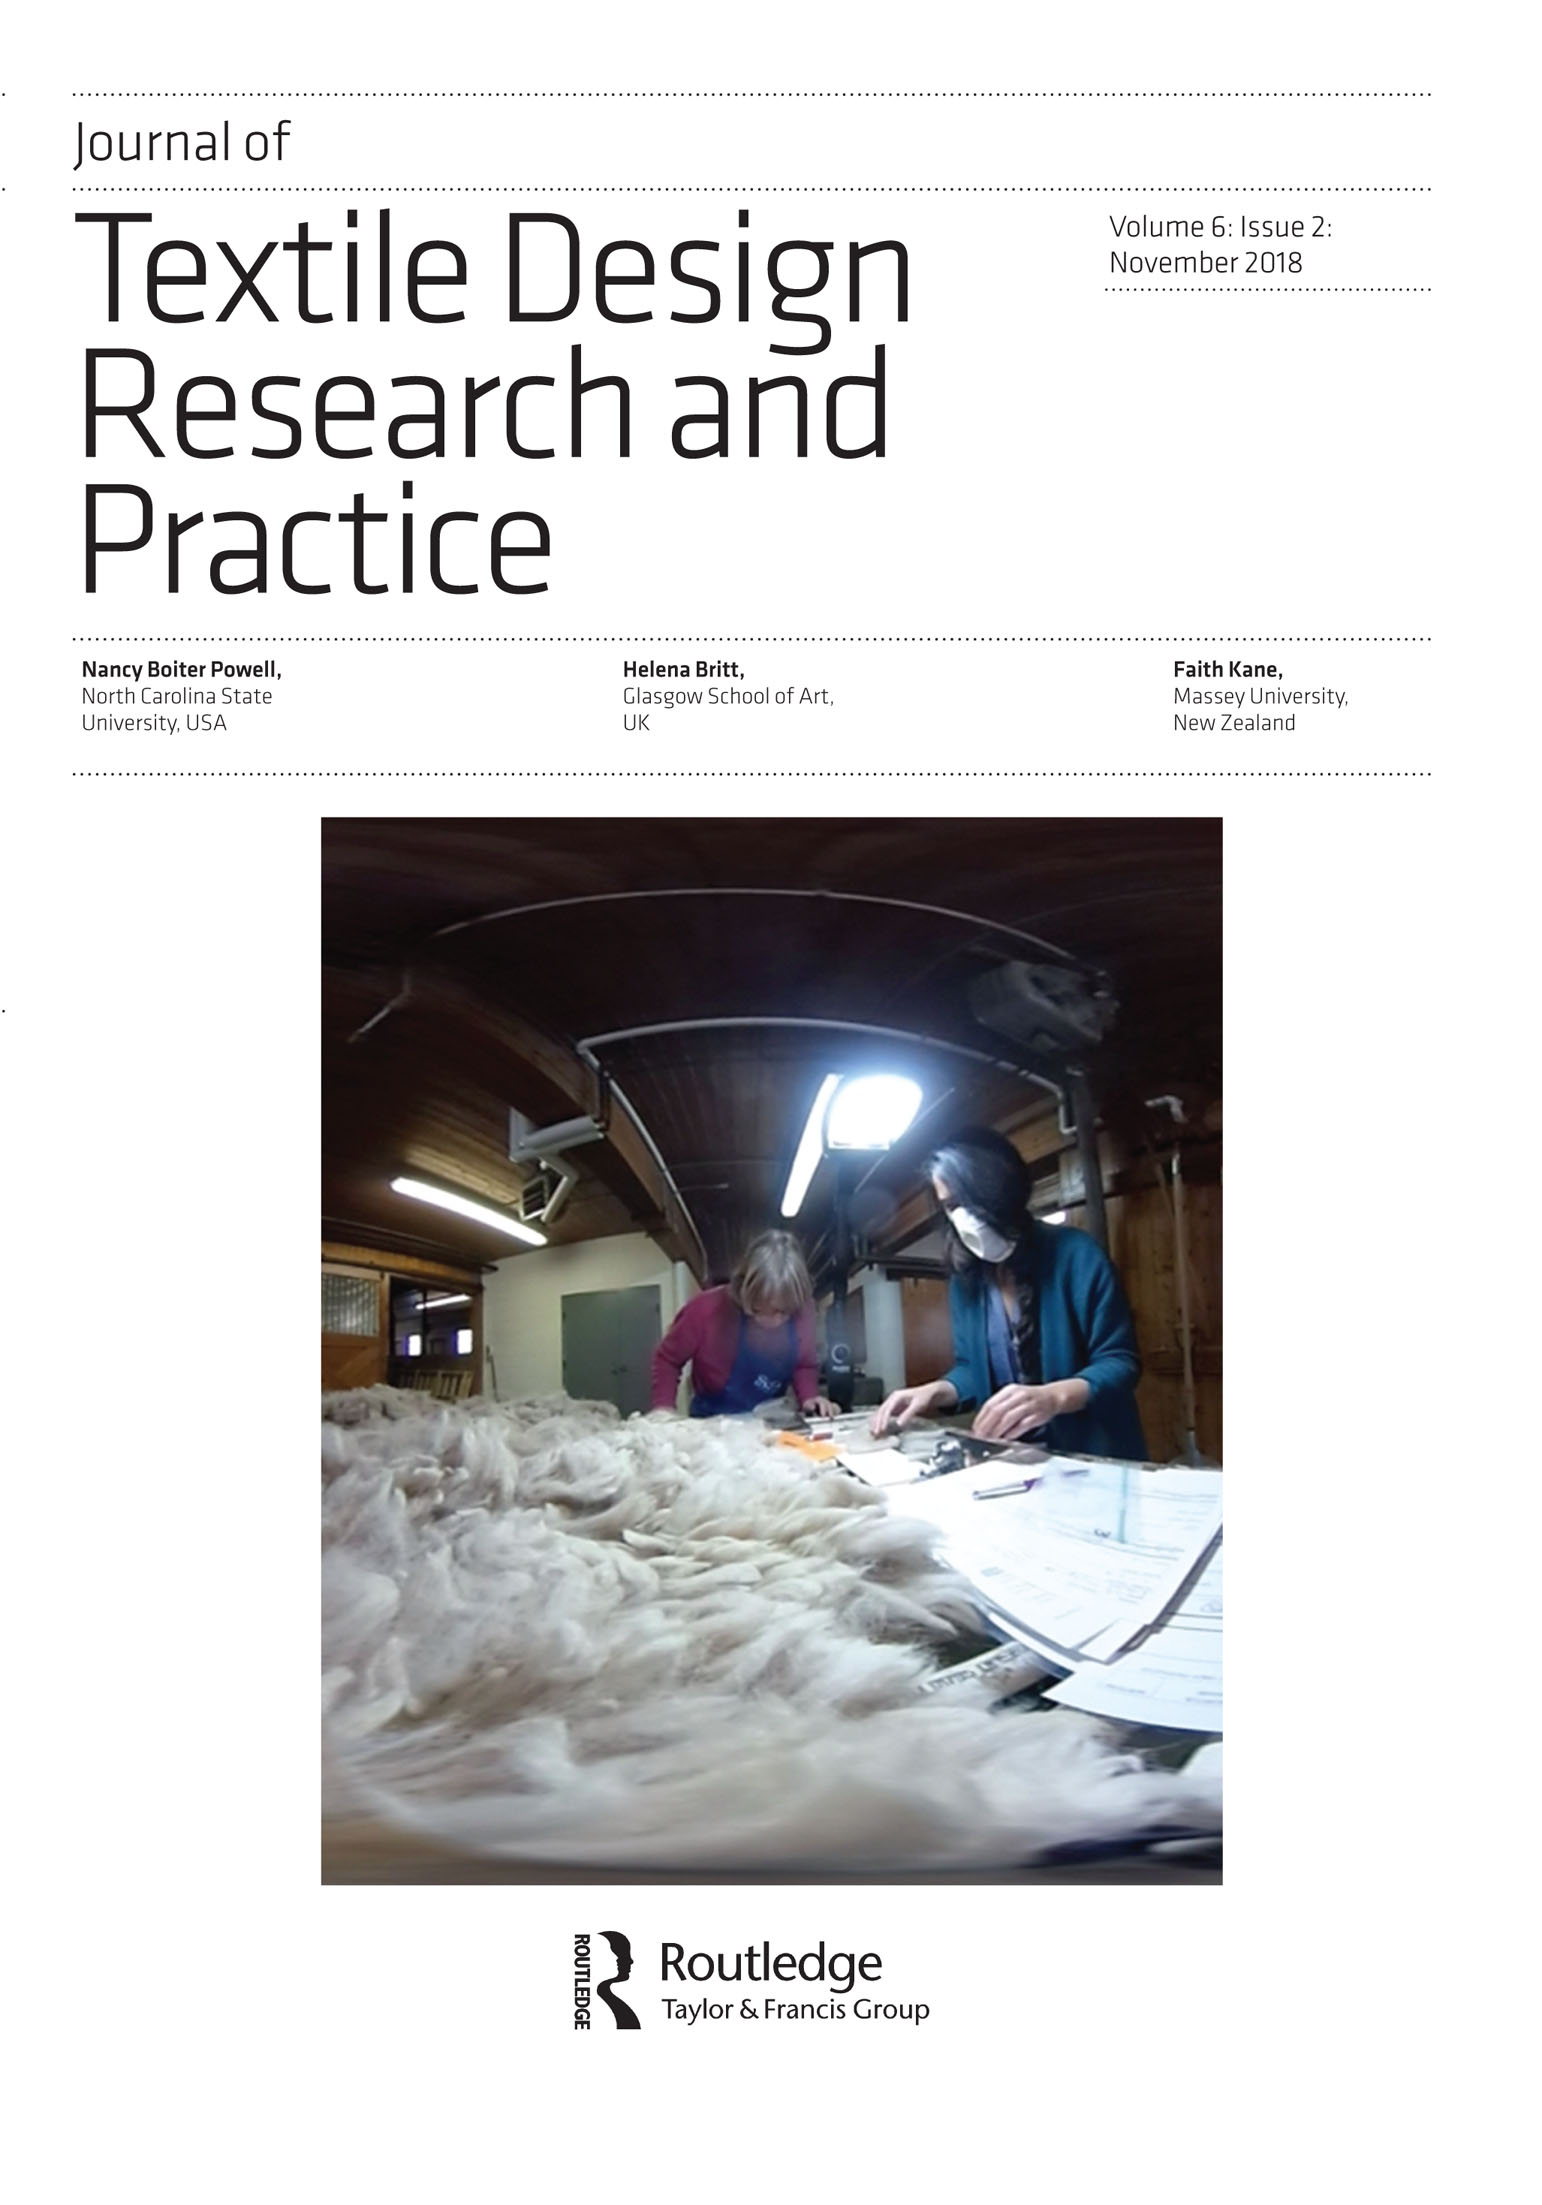 Full Article Seeing Raw Fibers Collaborating With Fiber Farmers To Develop Tacit Knowledge In A Fiber Sorting Grading And Classing Apprenticeship